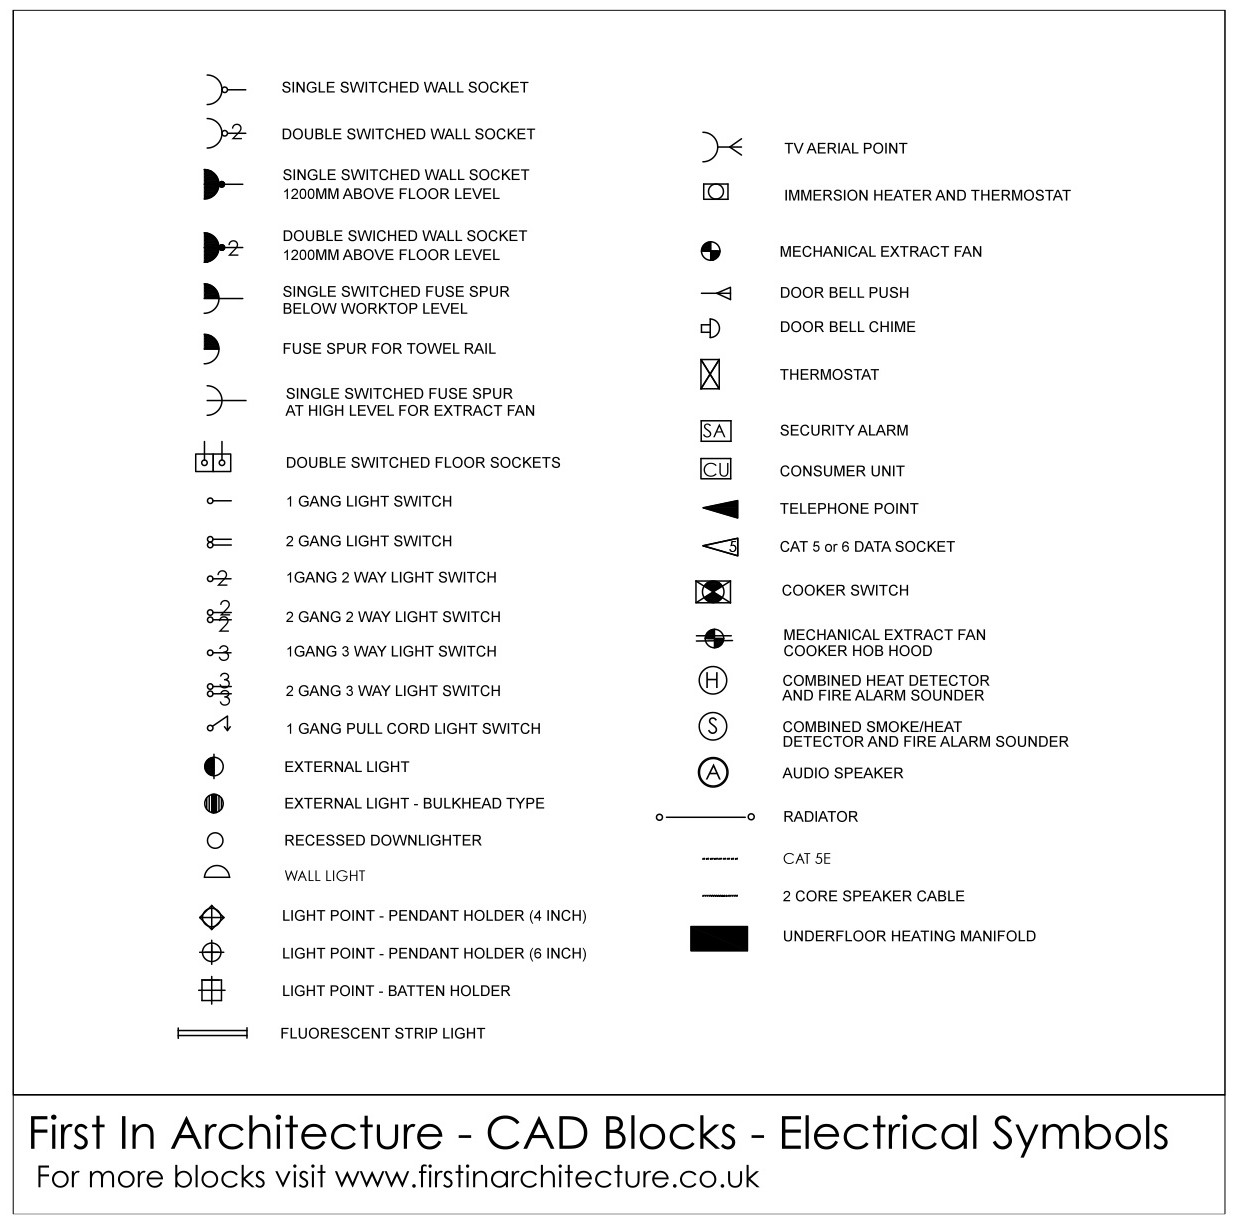 Cad Wiring Diagram Symbols : Free cad blocks electrical symbols